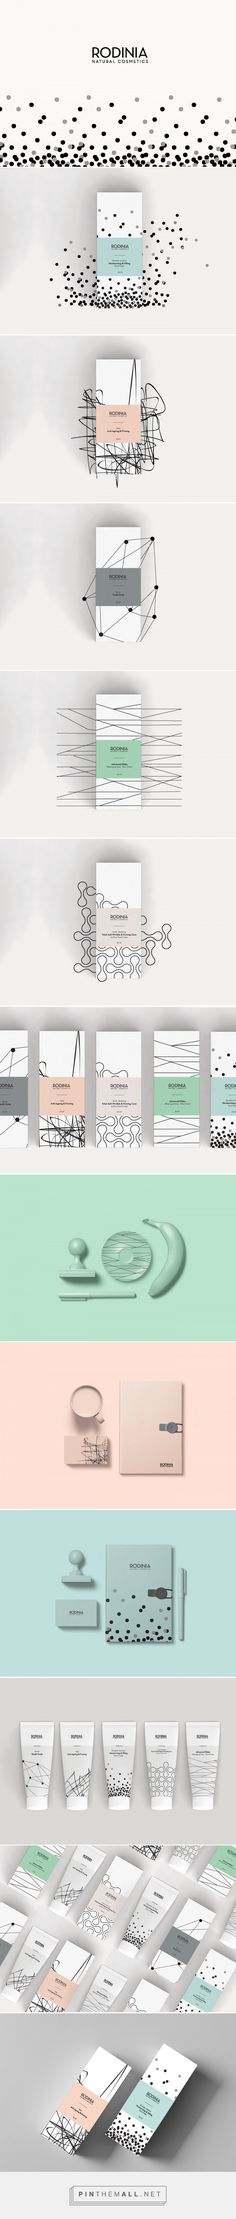 Rodinia Skincare Packaging by vassiliki fi | Fivestar Branding Agency – Design and Branding Agency & Curated Inspiration Gallery #packaging #packagedesign #packagingdesign #design #designinspiration #cosmeticpackaging #skincarepackaging